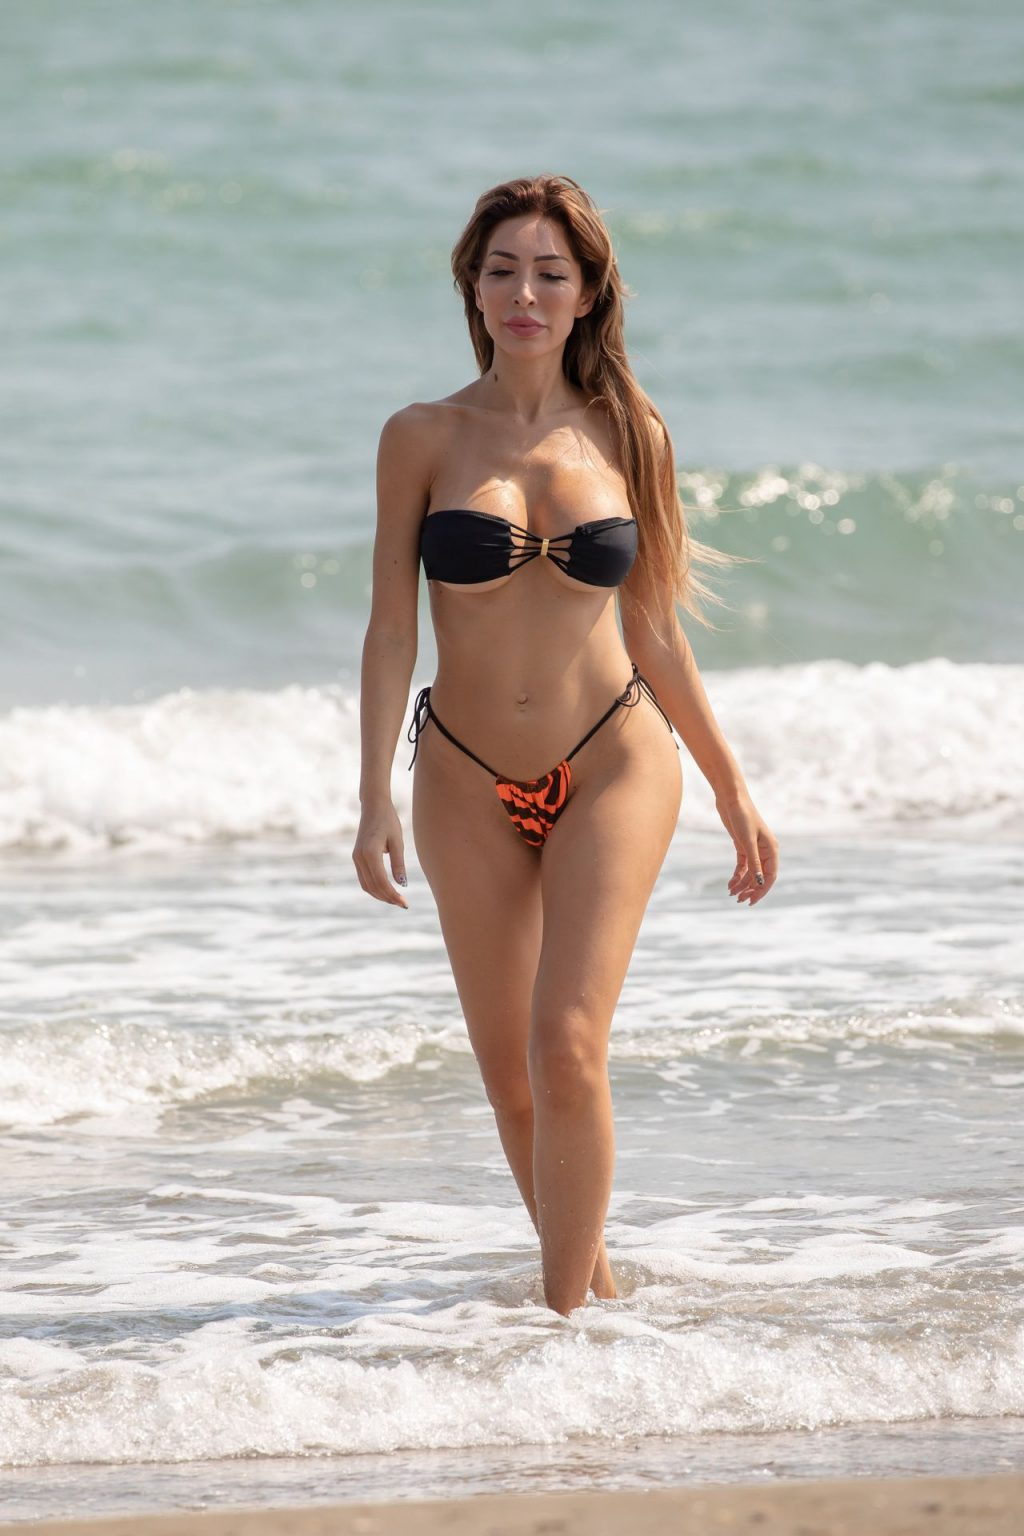 Farrah Abraham on the beach